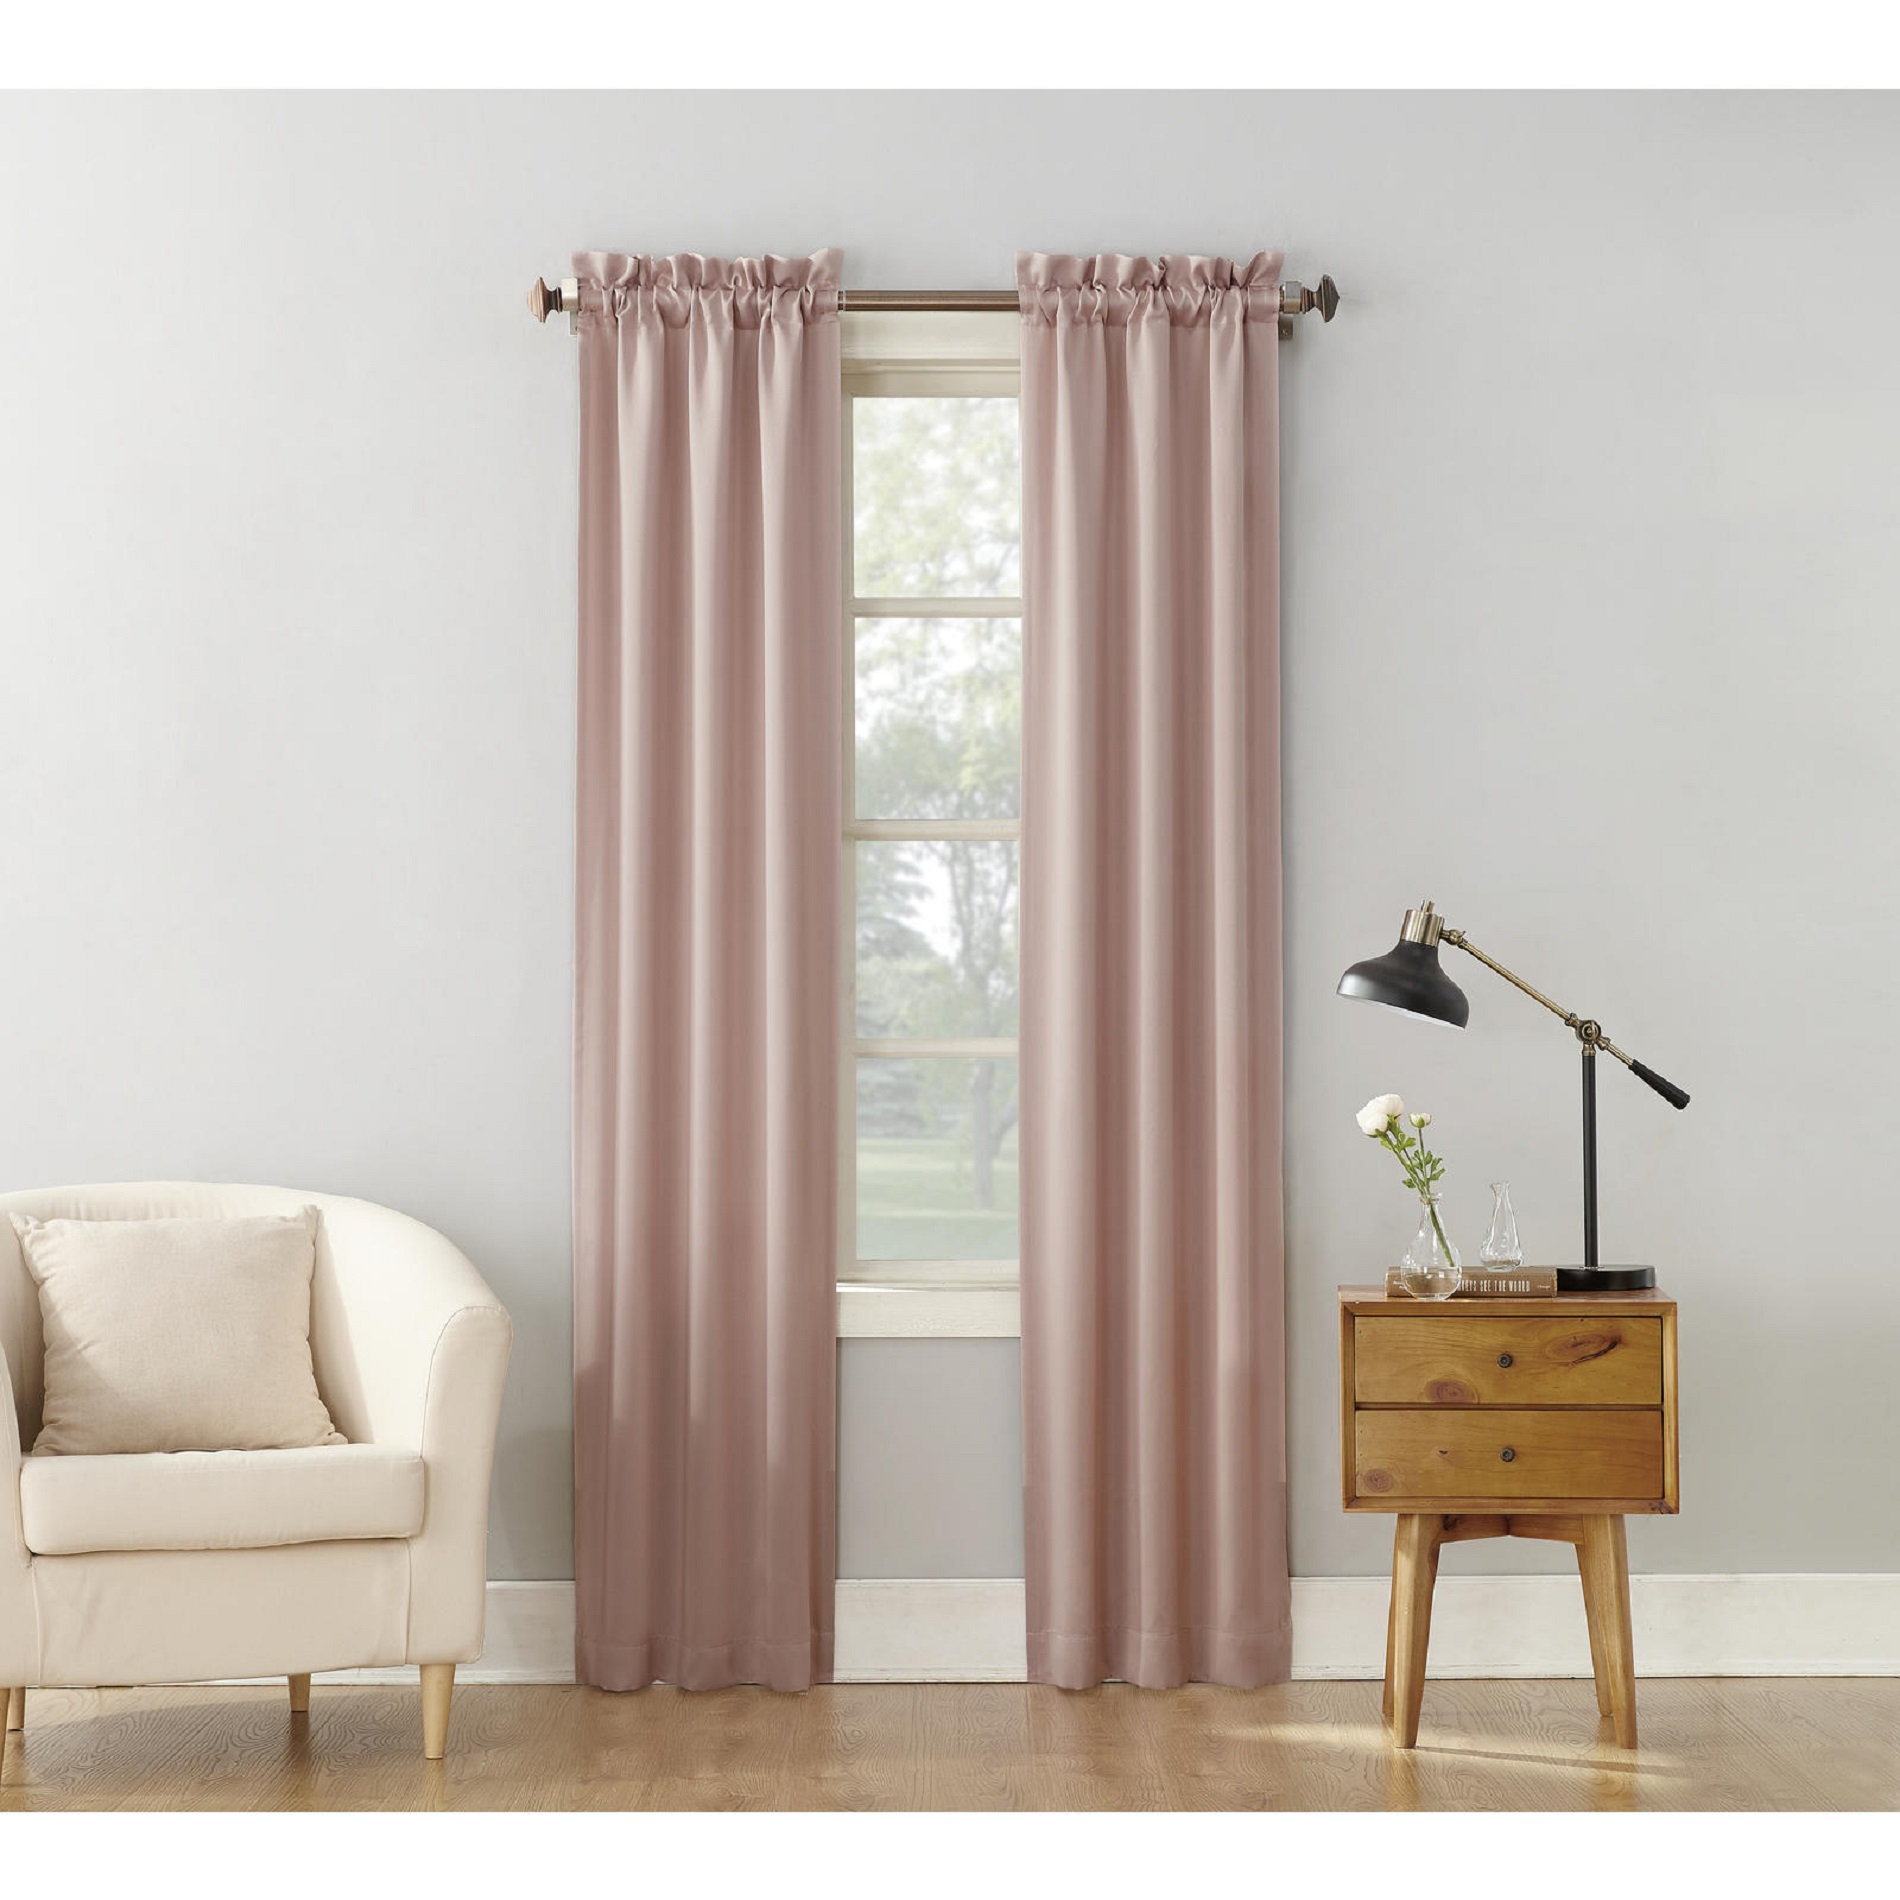 36 Inch Room Darkening Curtains Essential Home Logan 2pk Room Darkening Window Panels